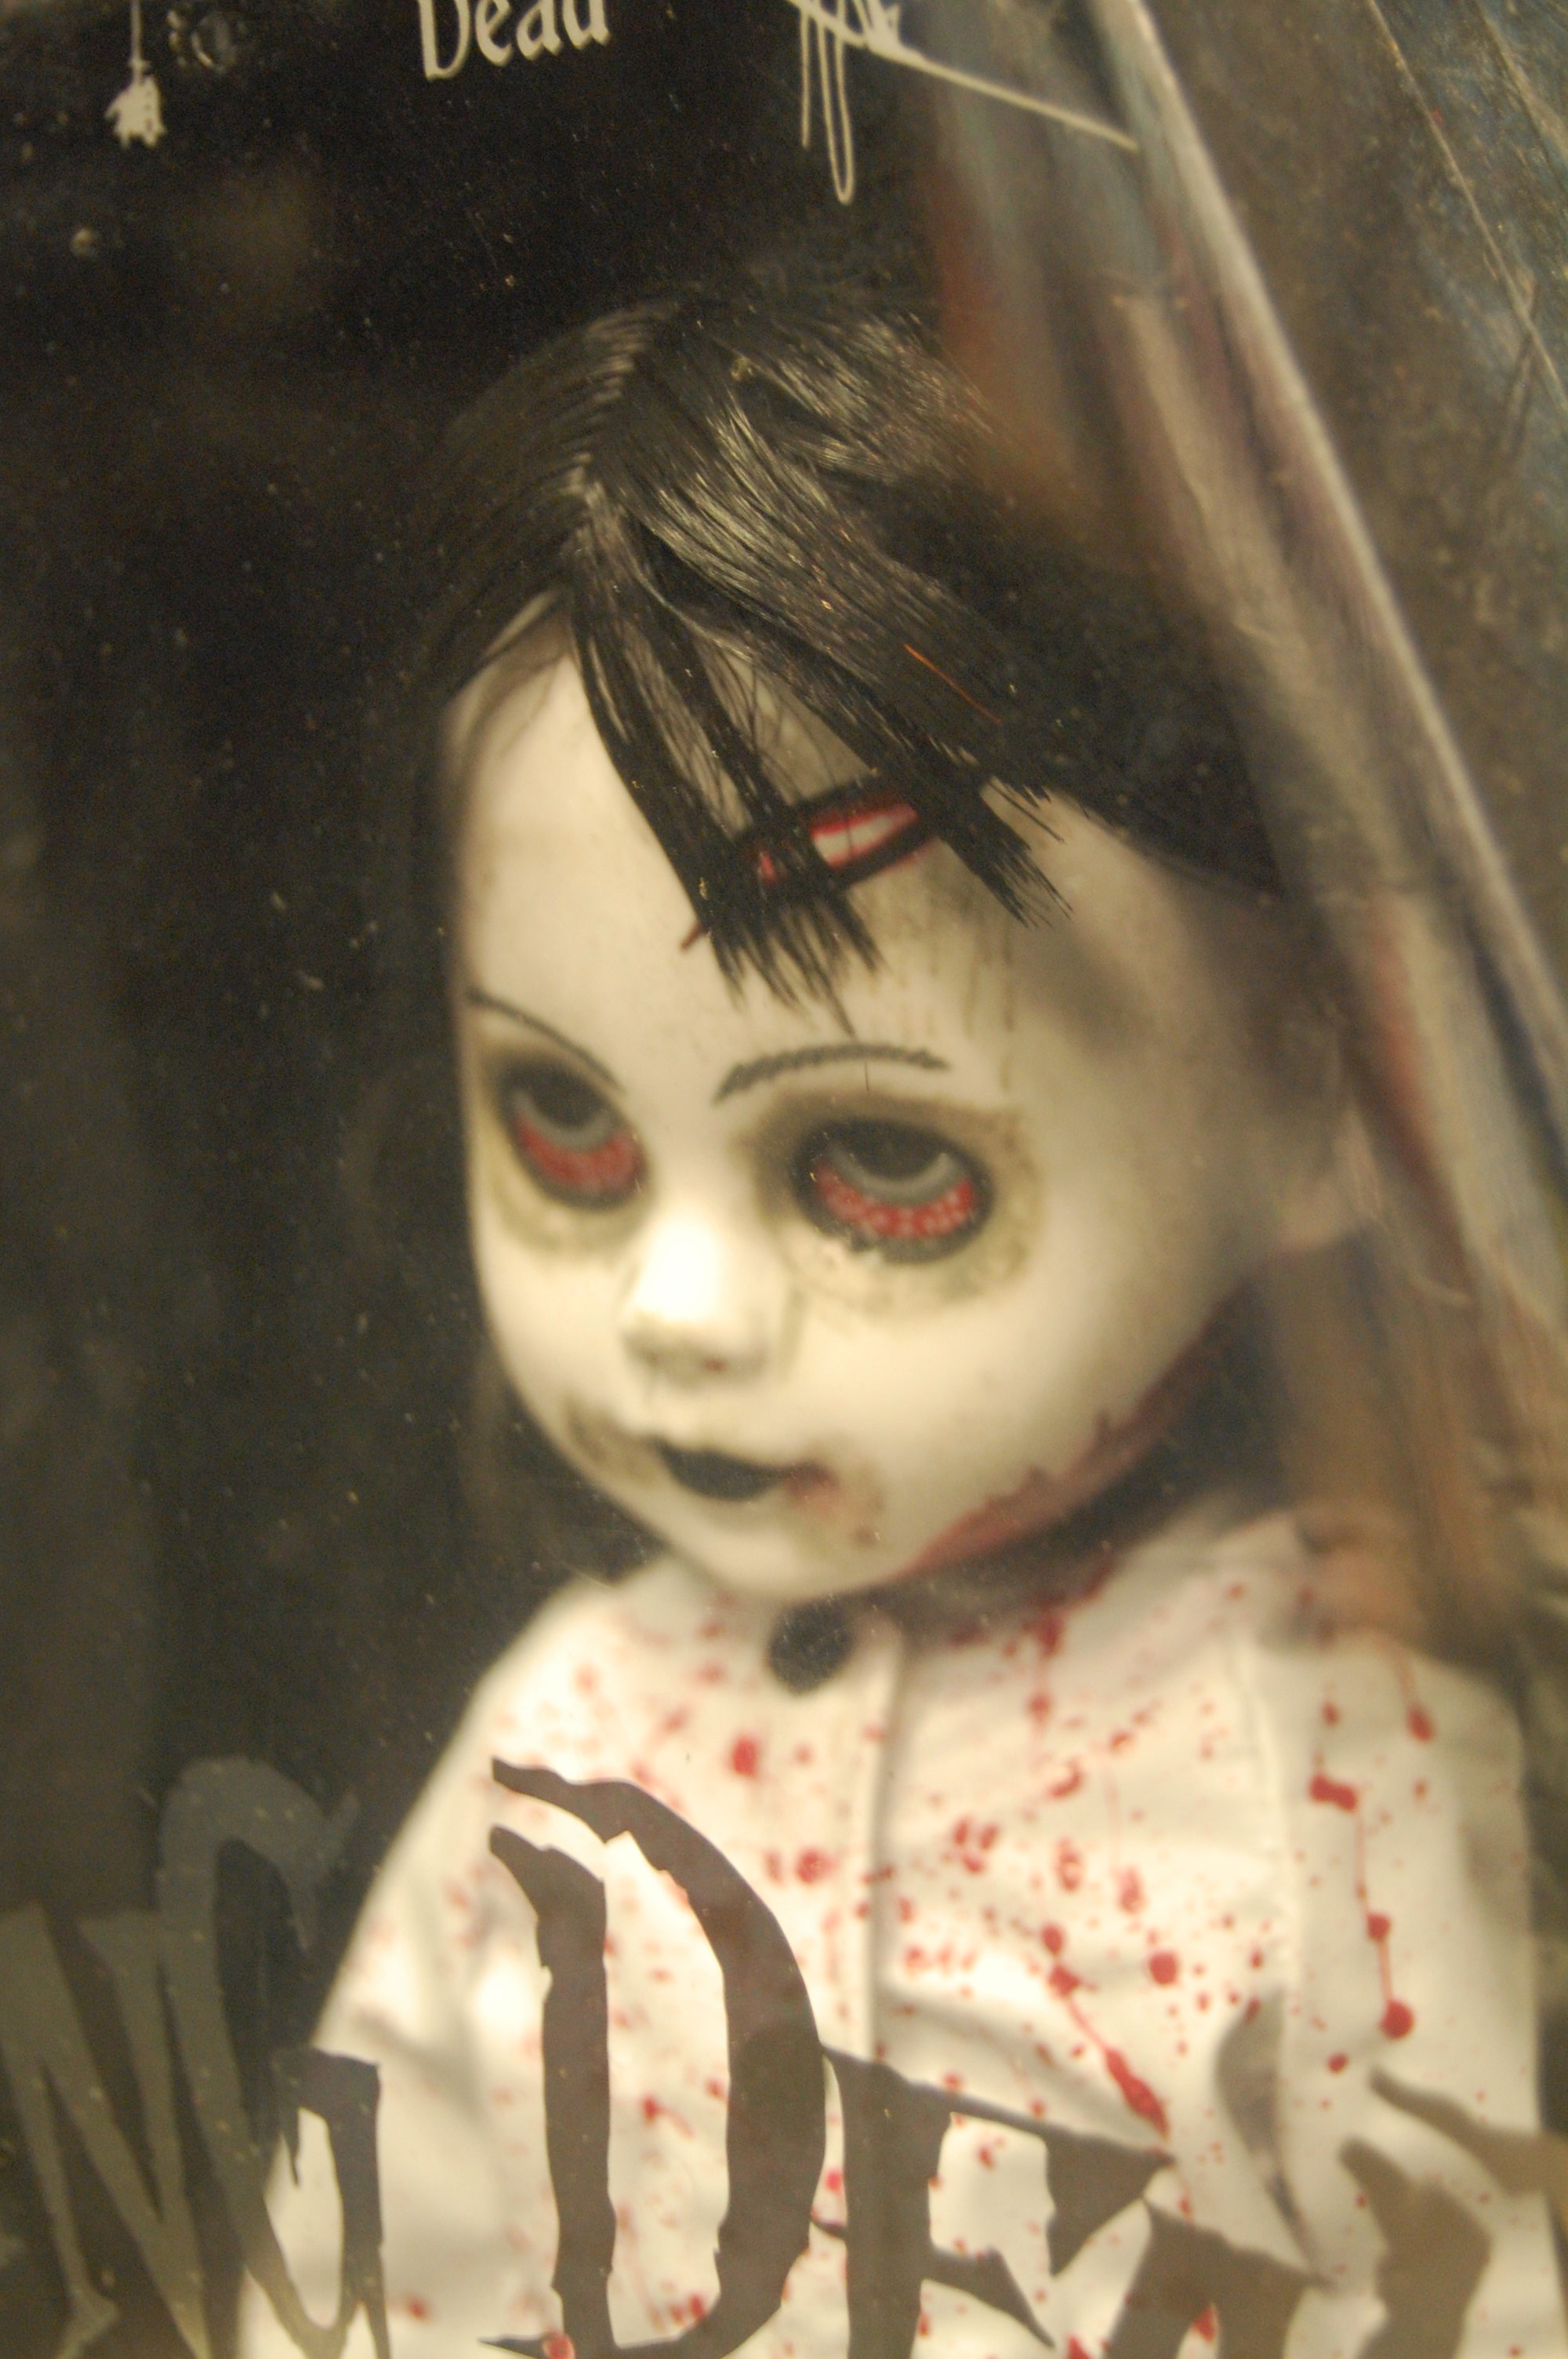 Living Dead Dolls Series 22: Ava (Black & White Variant) - Thumbnail 1